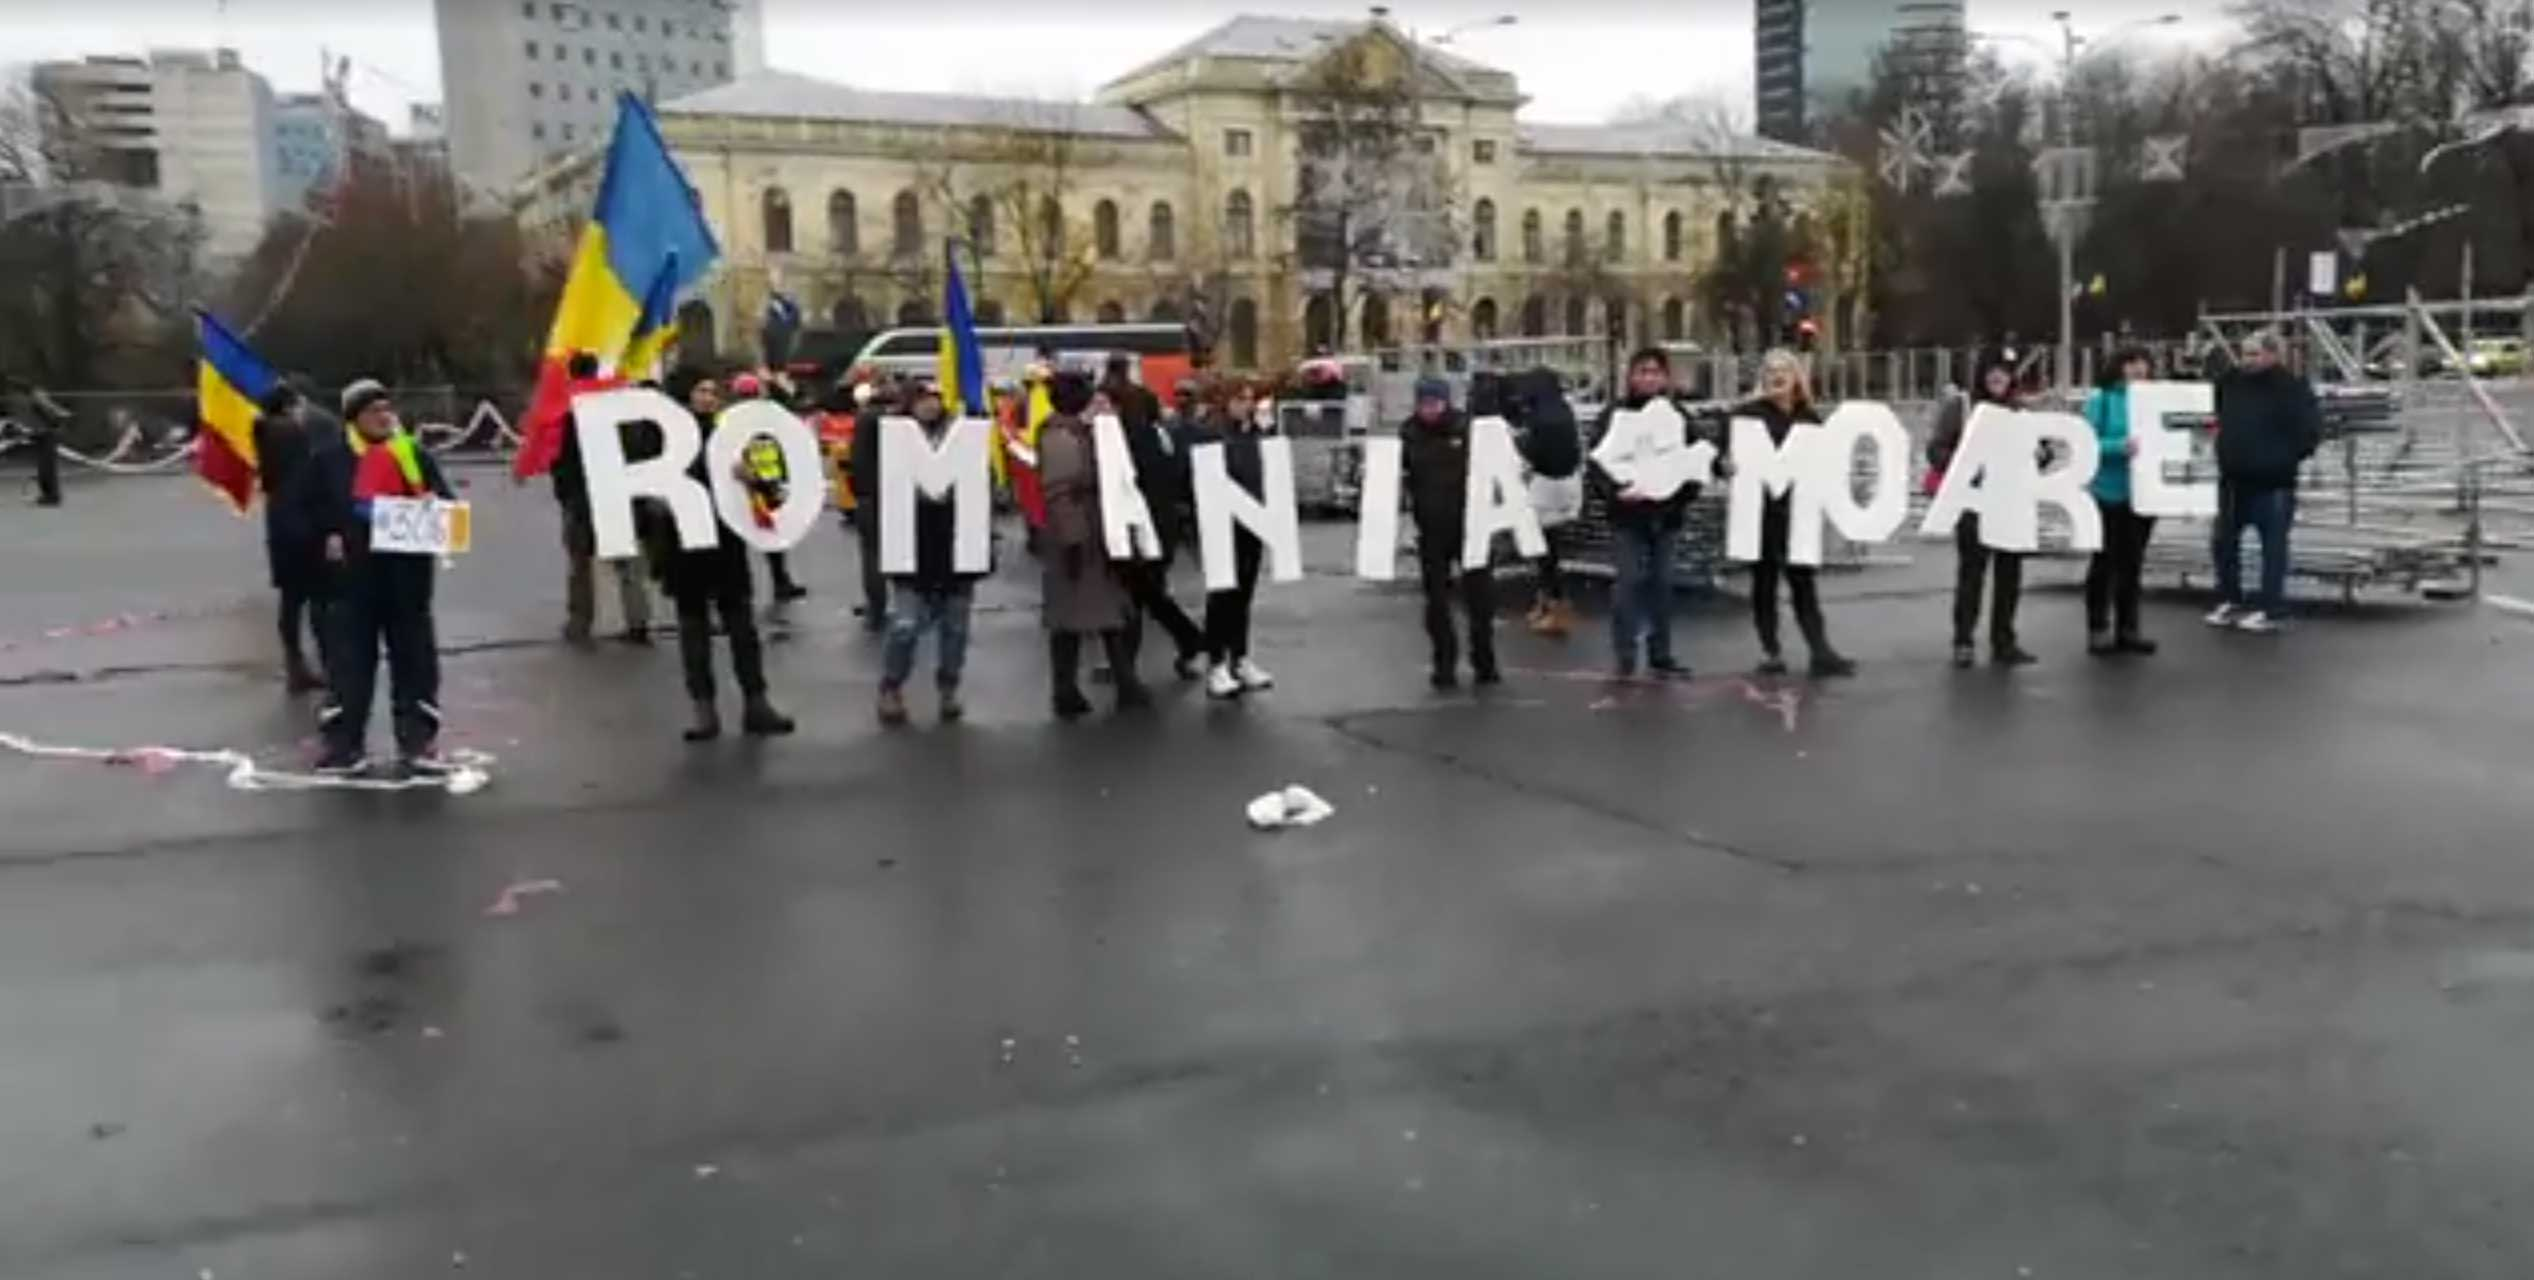 Romanians again protest against fiscal, judicial changes (VIDEO)